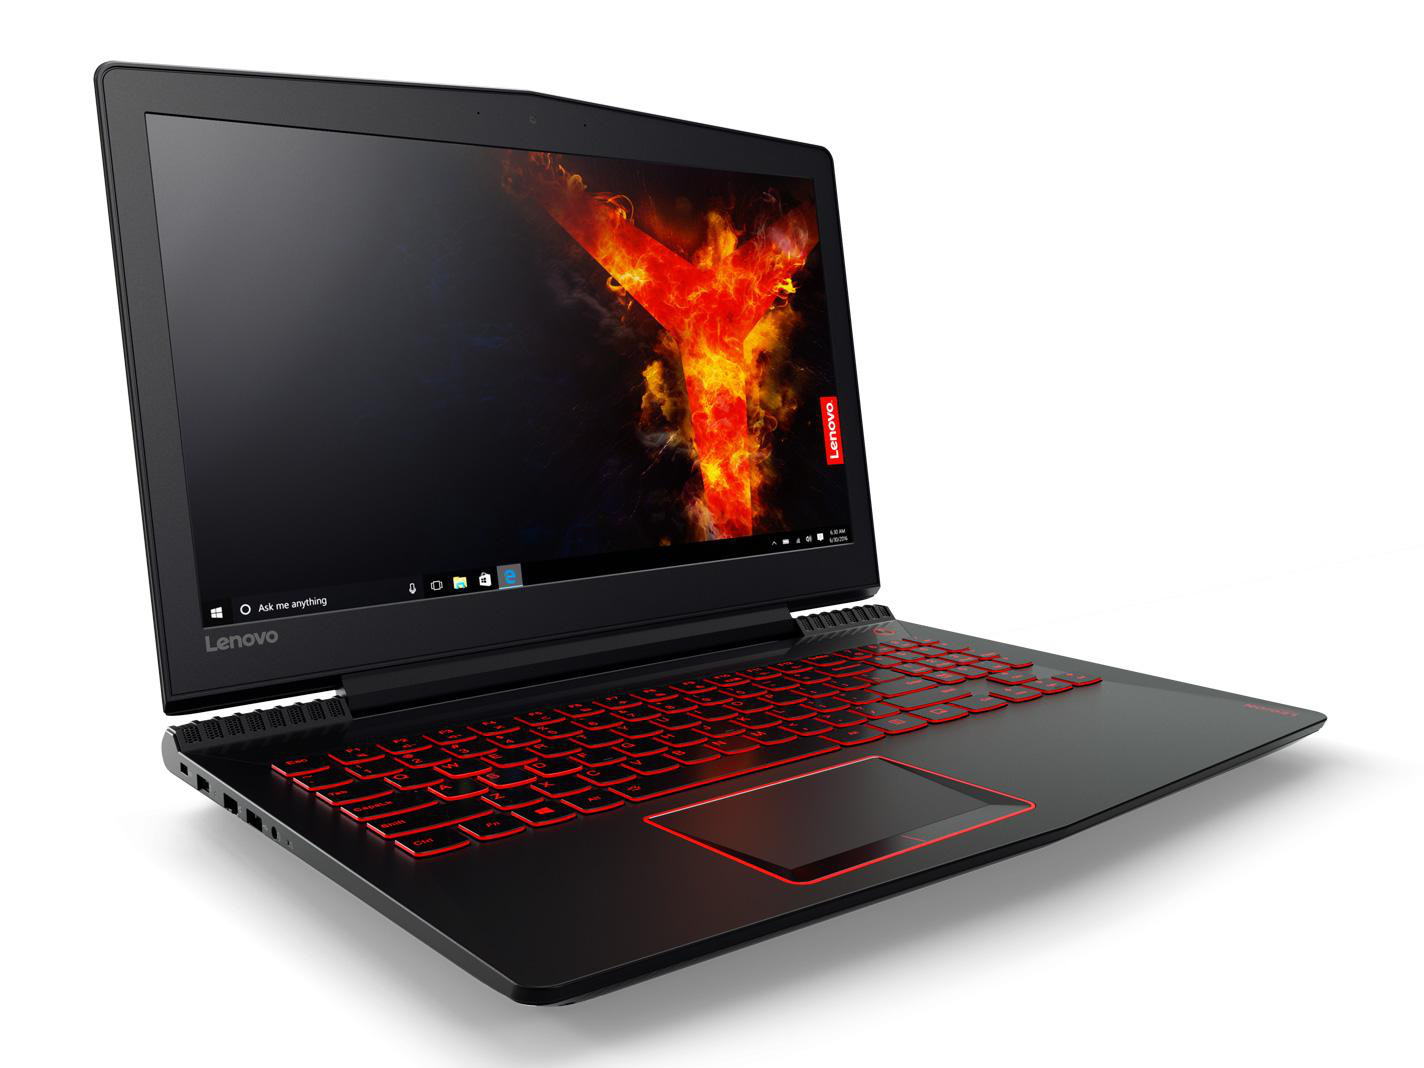 Gaming laptops